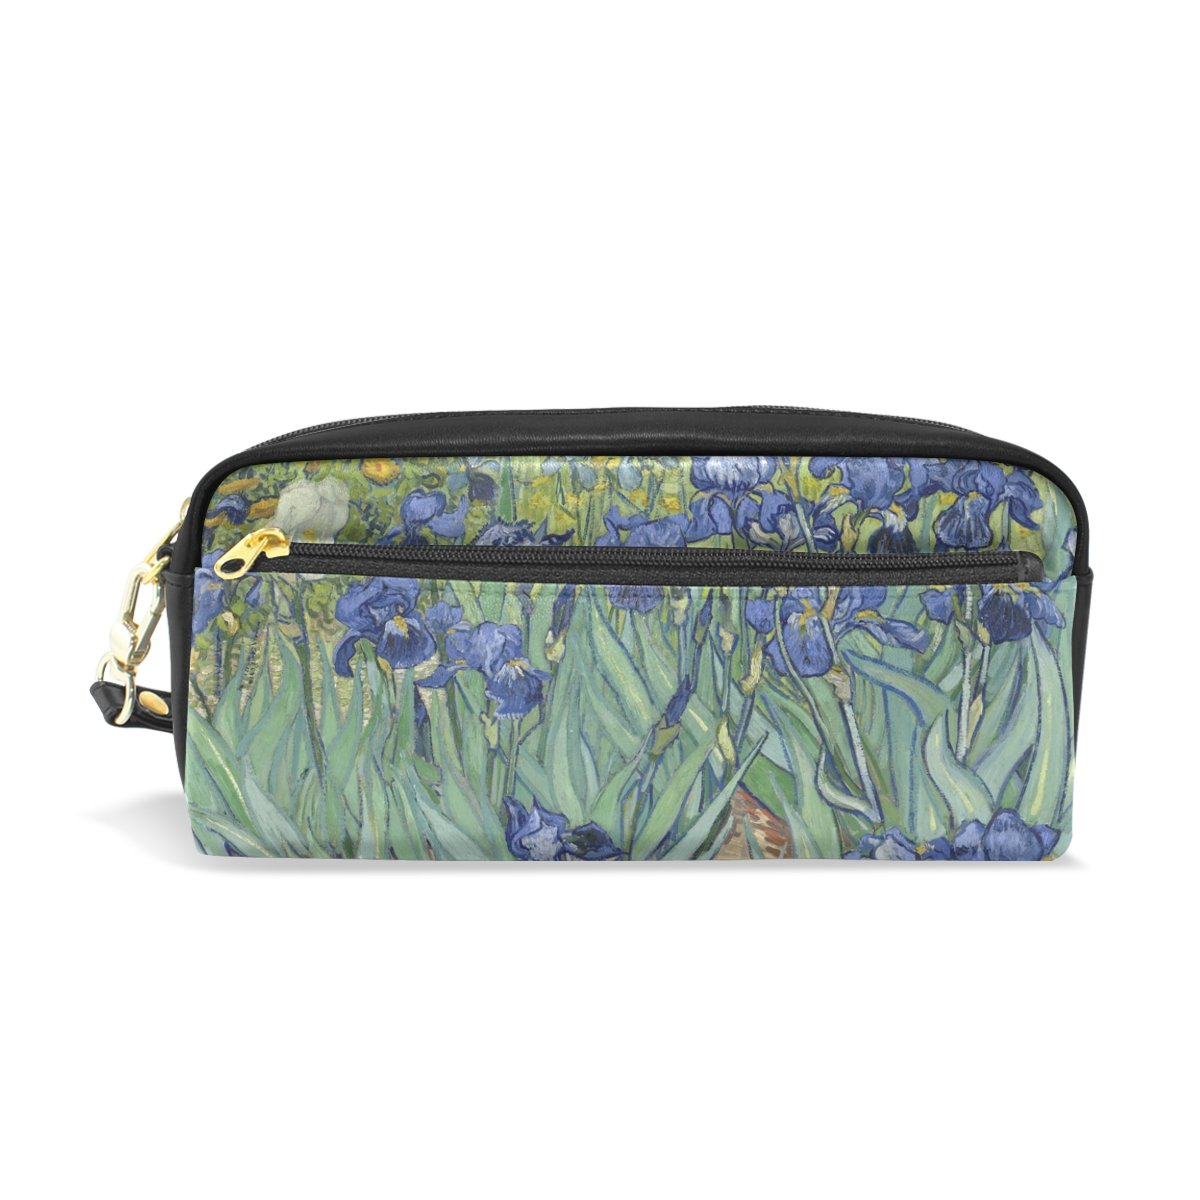 My Little Nest Van Gogh Oil Painting Irises Cosmetic Makeup Bag Pencil Case Multi Function School Office Organizer Bag with Zipper Closure